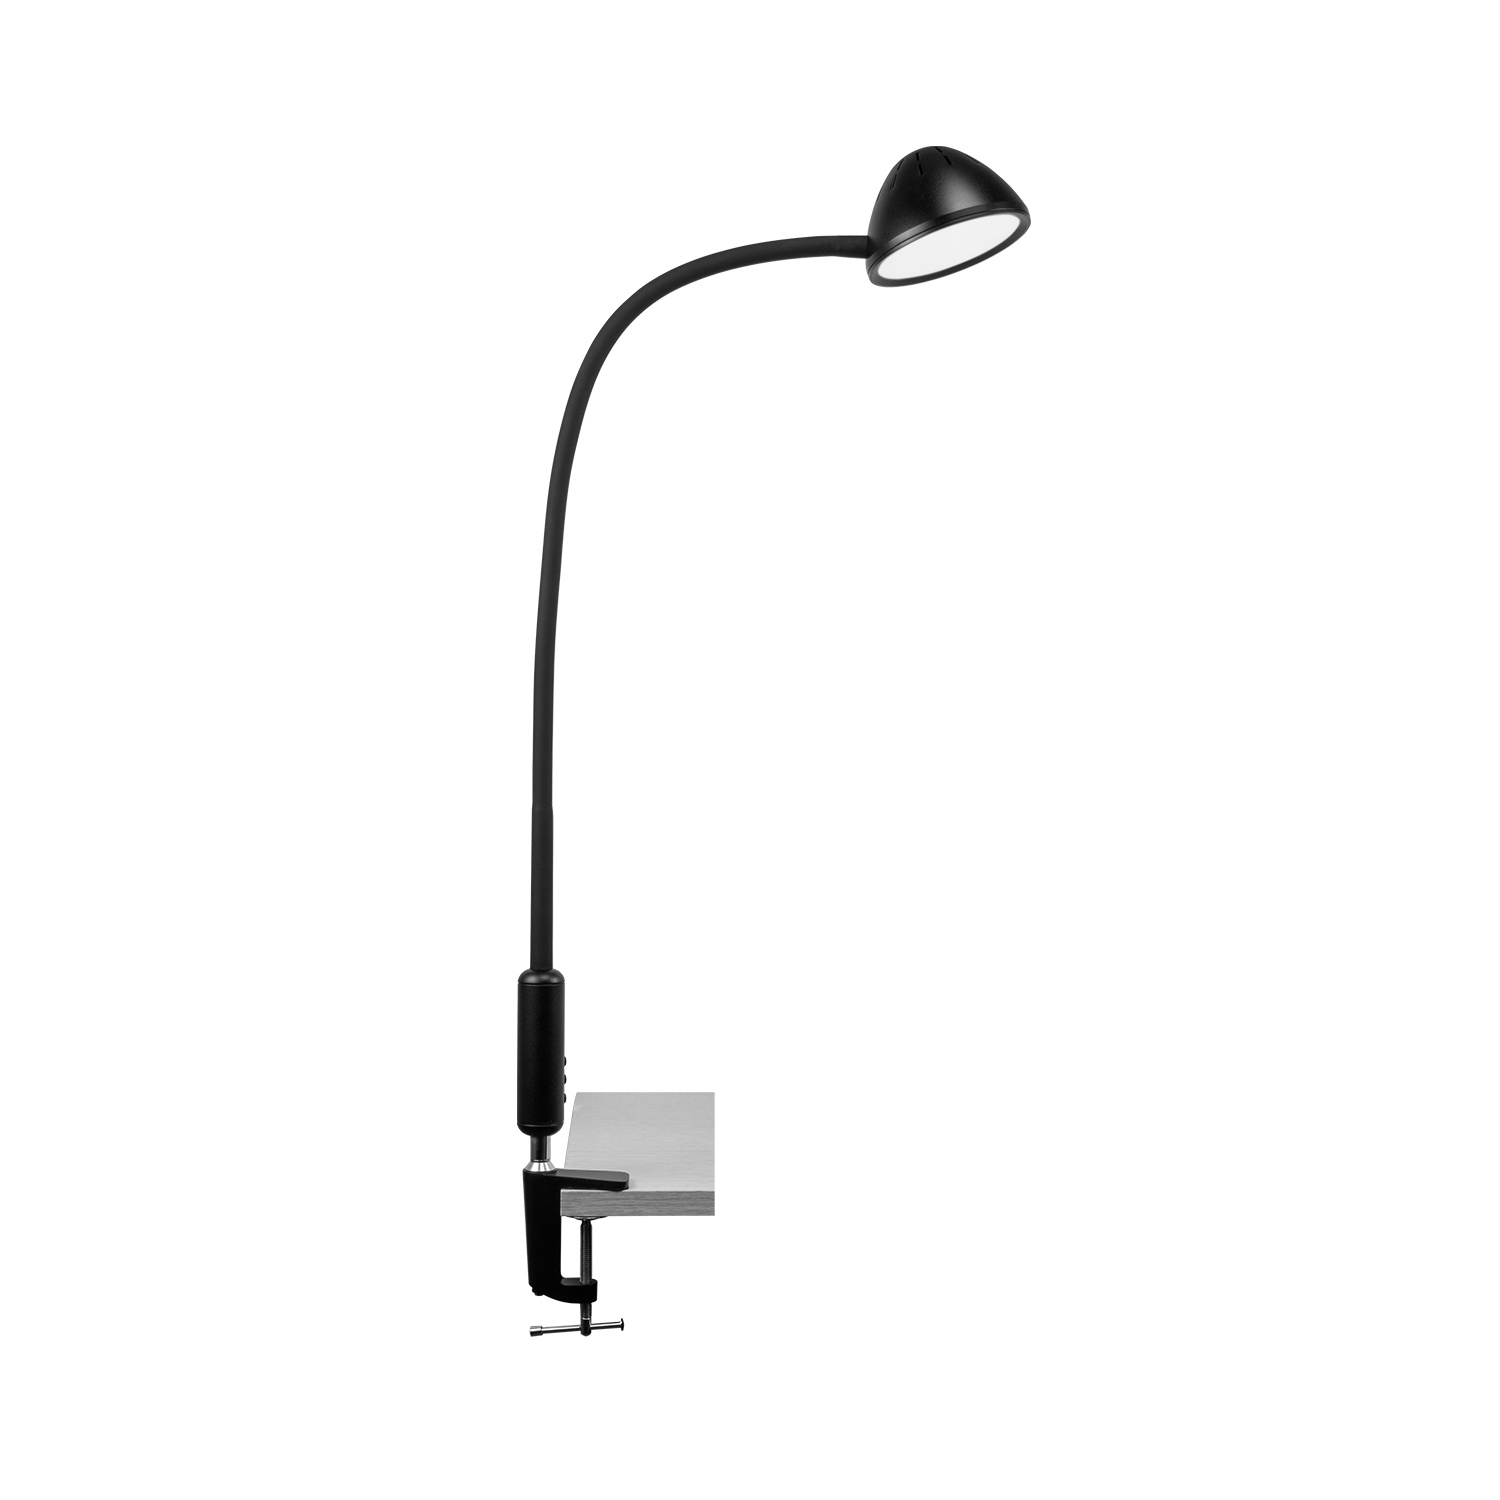 Image of: China Clip Desk Lamp Modern Metal Swing Arm Dimmable Drafting Table Lamp With Clamp China Clamp Light For Desk Clamp Desk Lamp